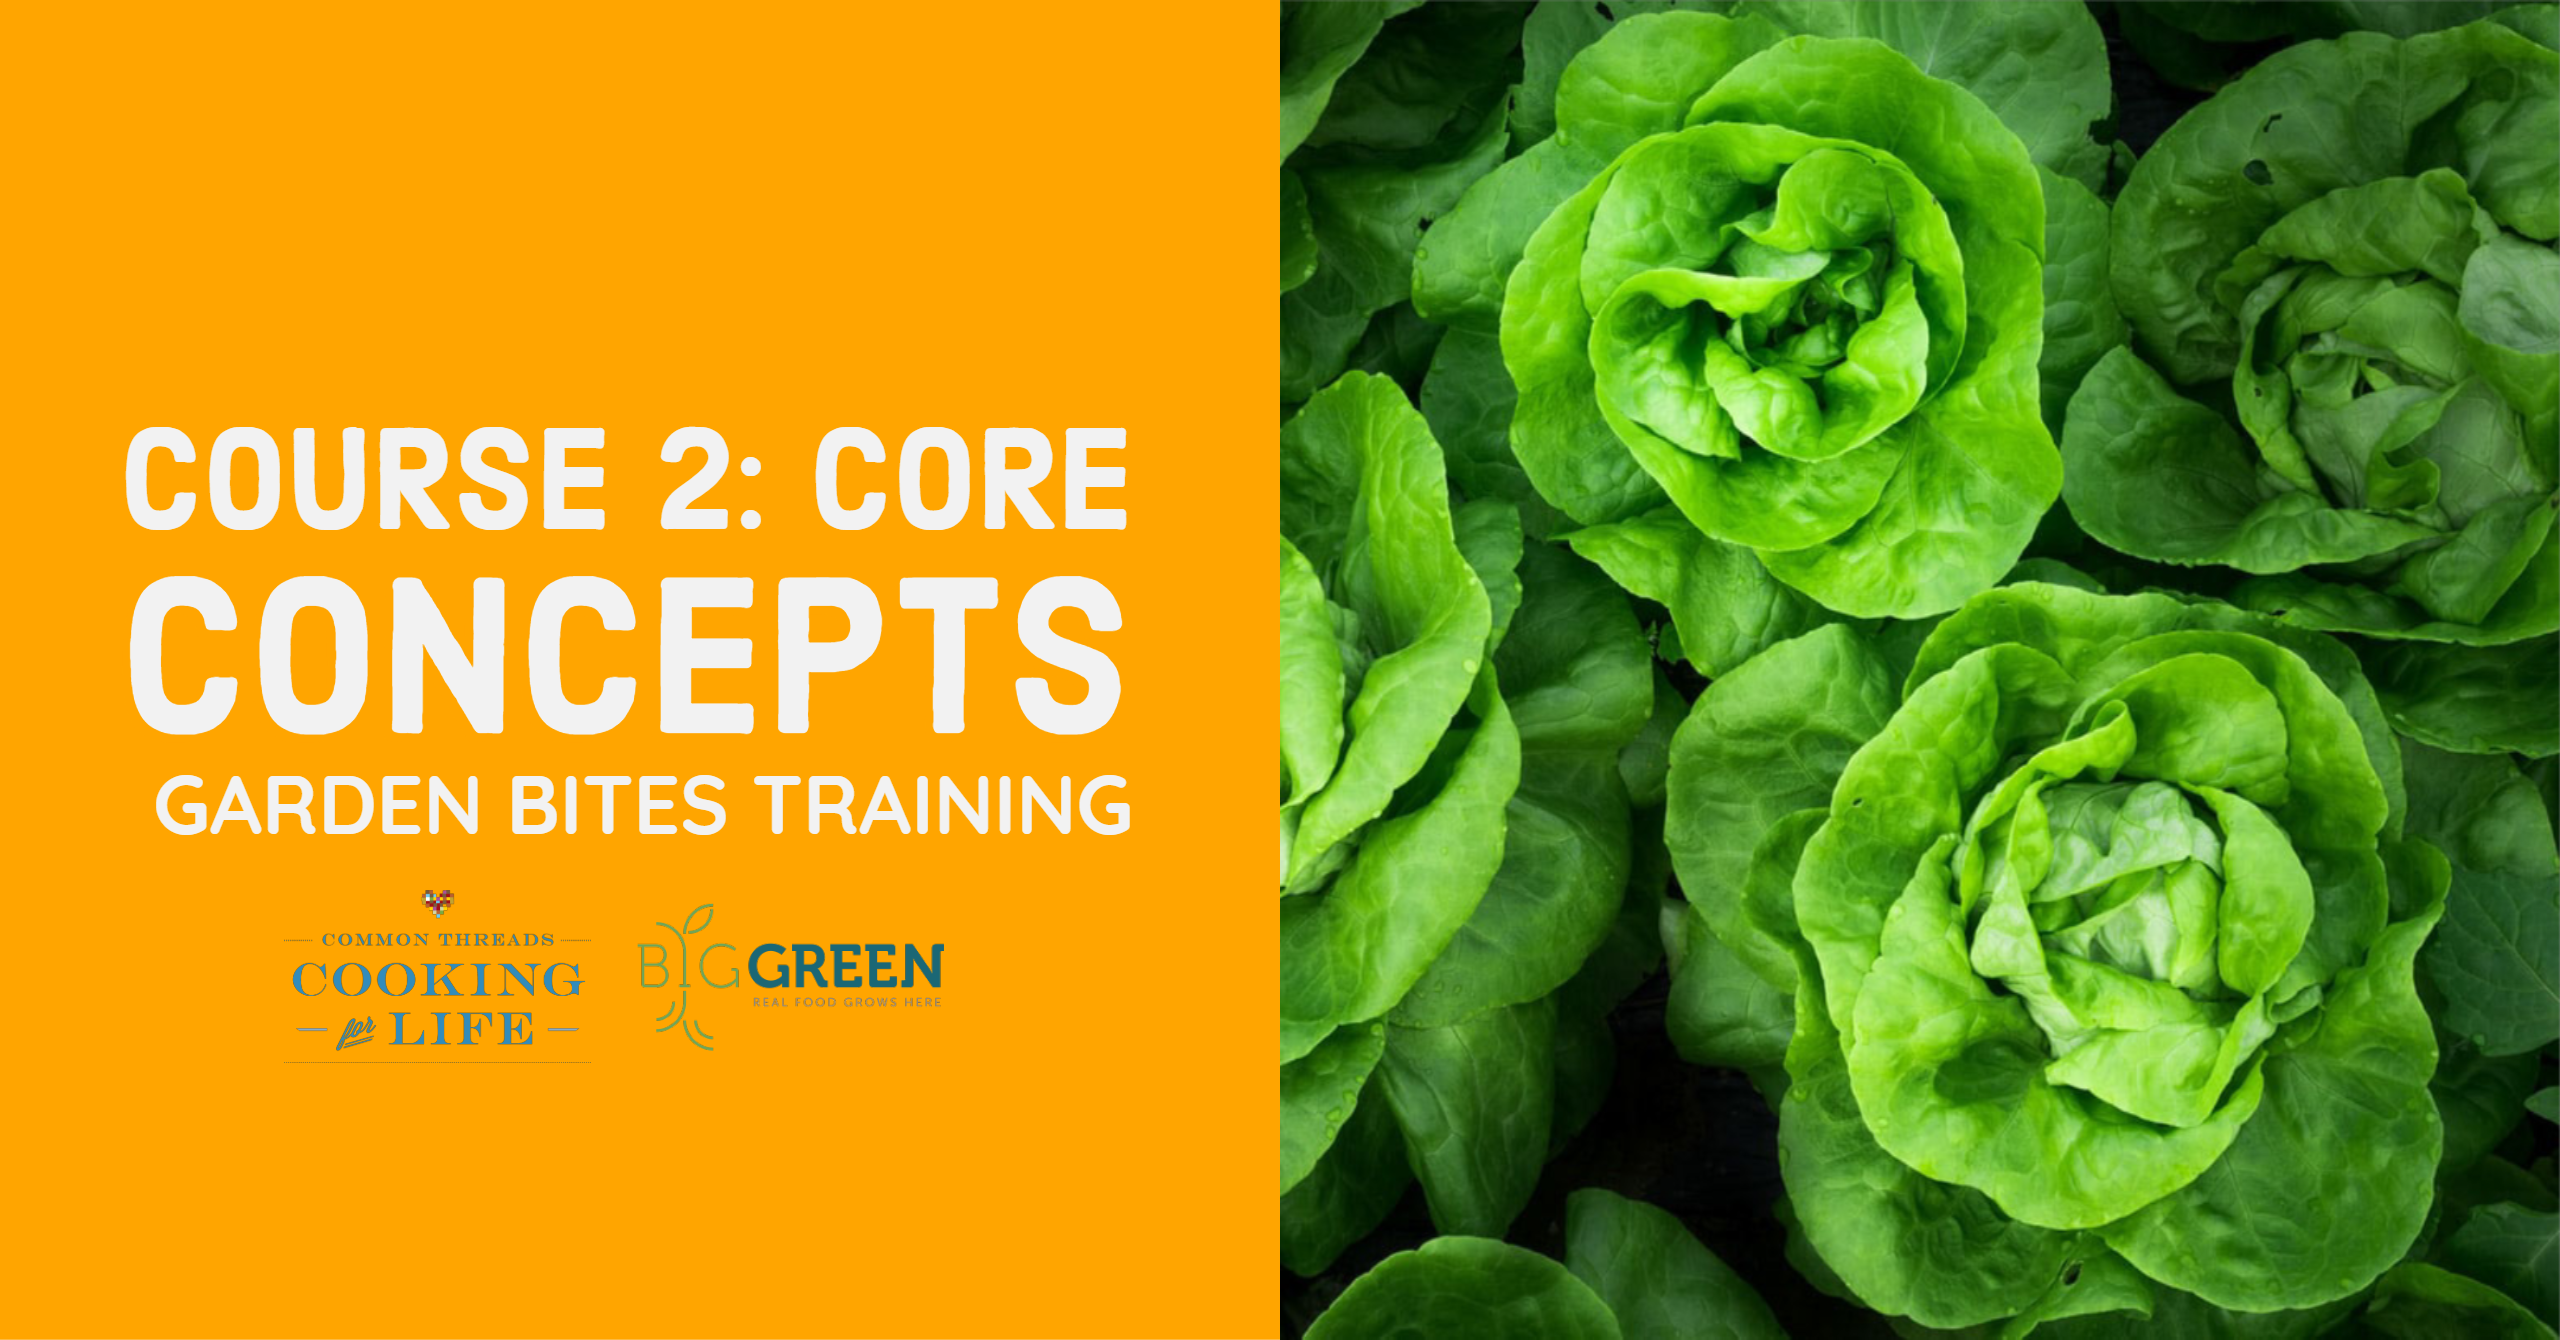 Garden Bites Training for CT: Core Concepts